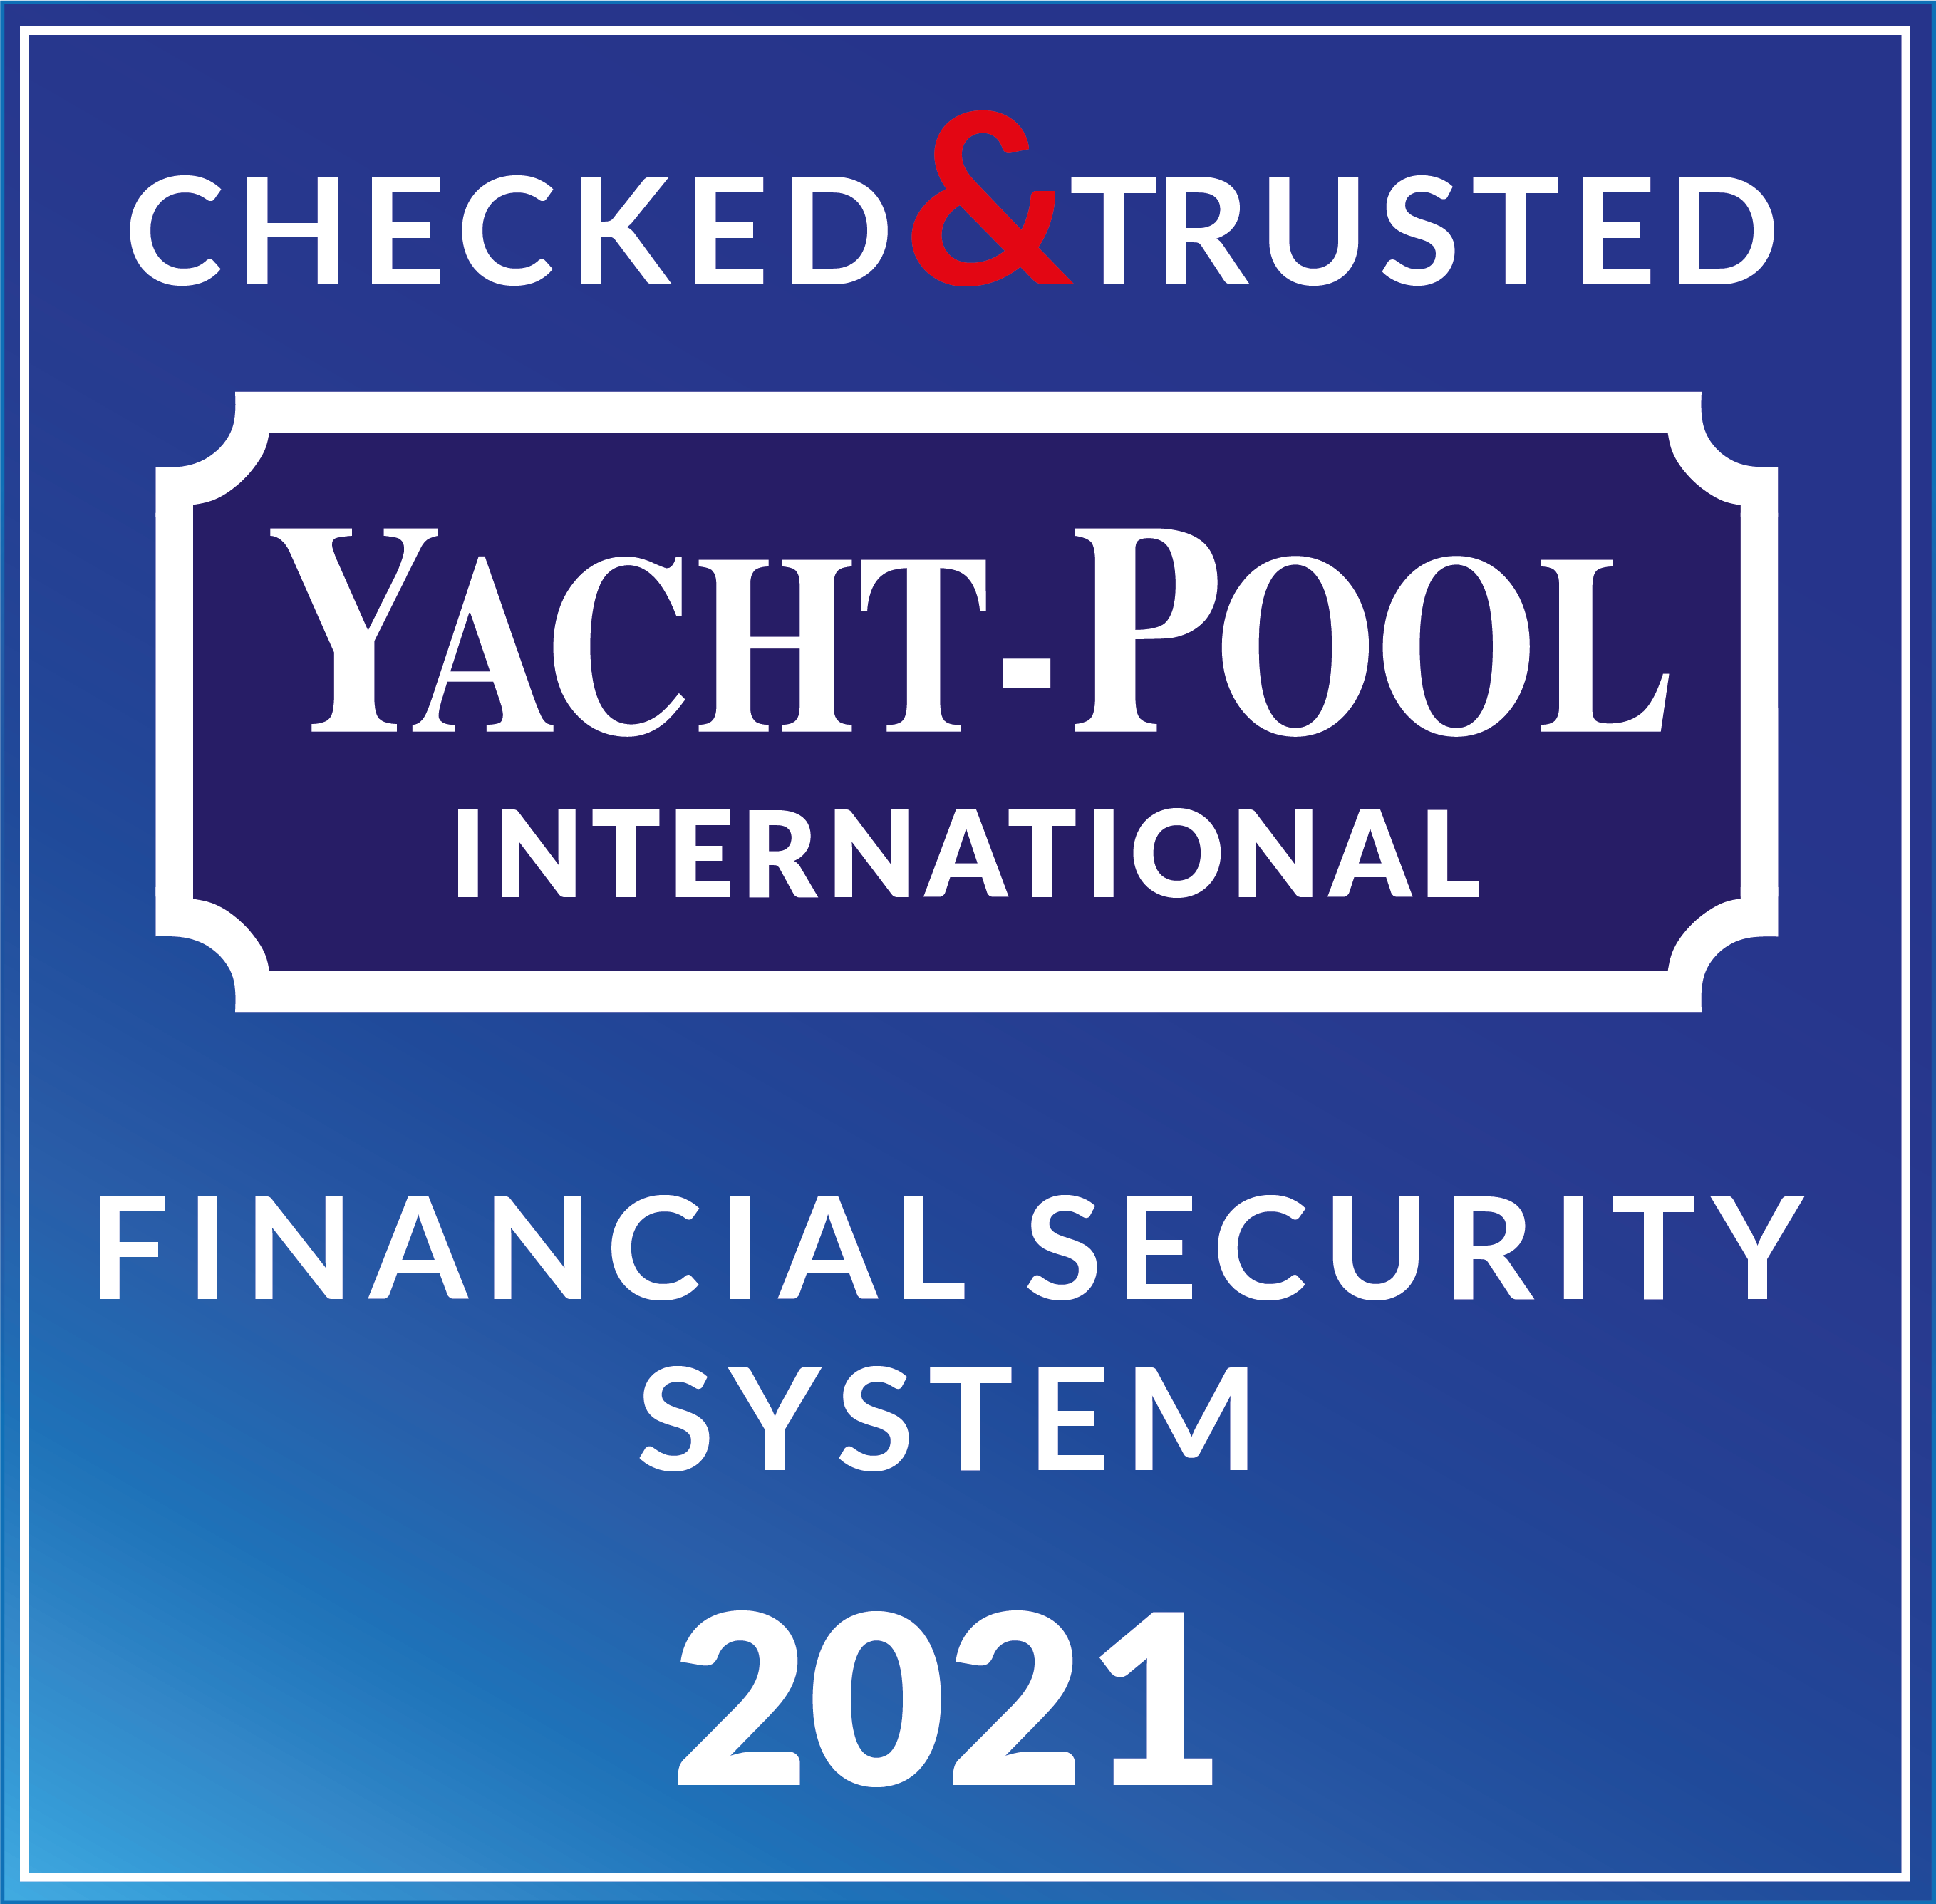 YACHT POOL Financial Security